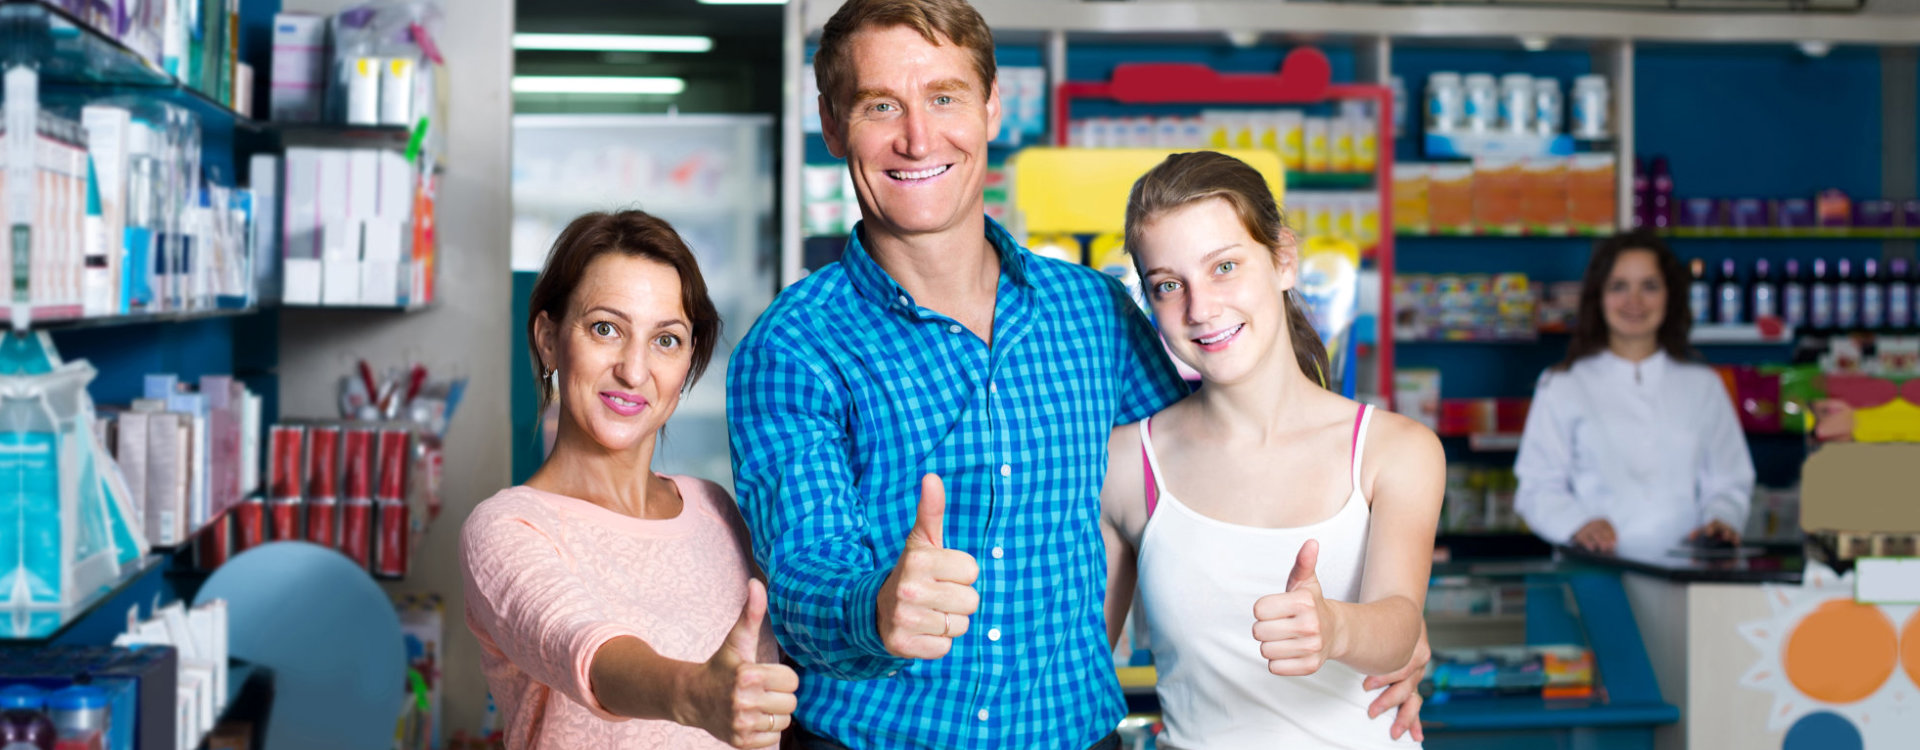 portrait of happy parents with daughter teenager looking satisfied in drug store